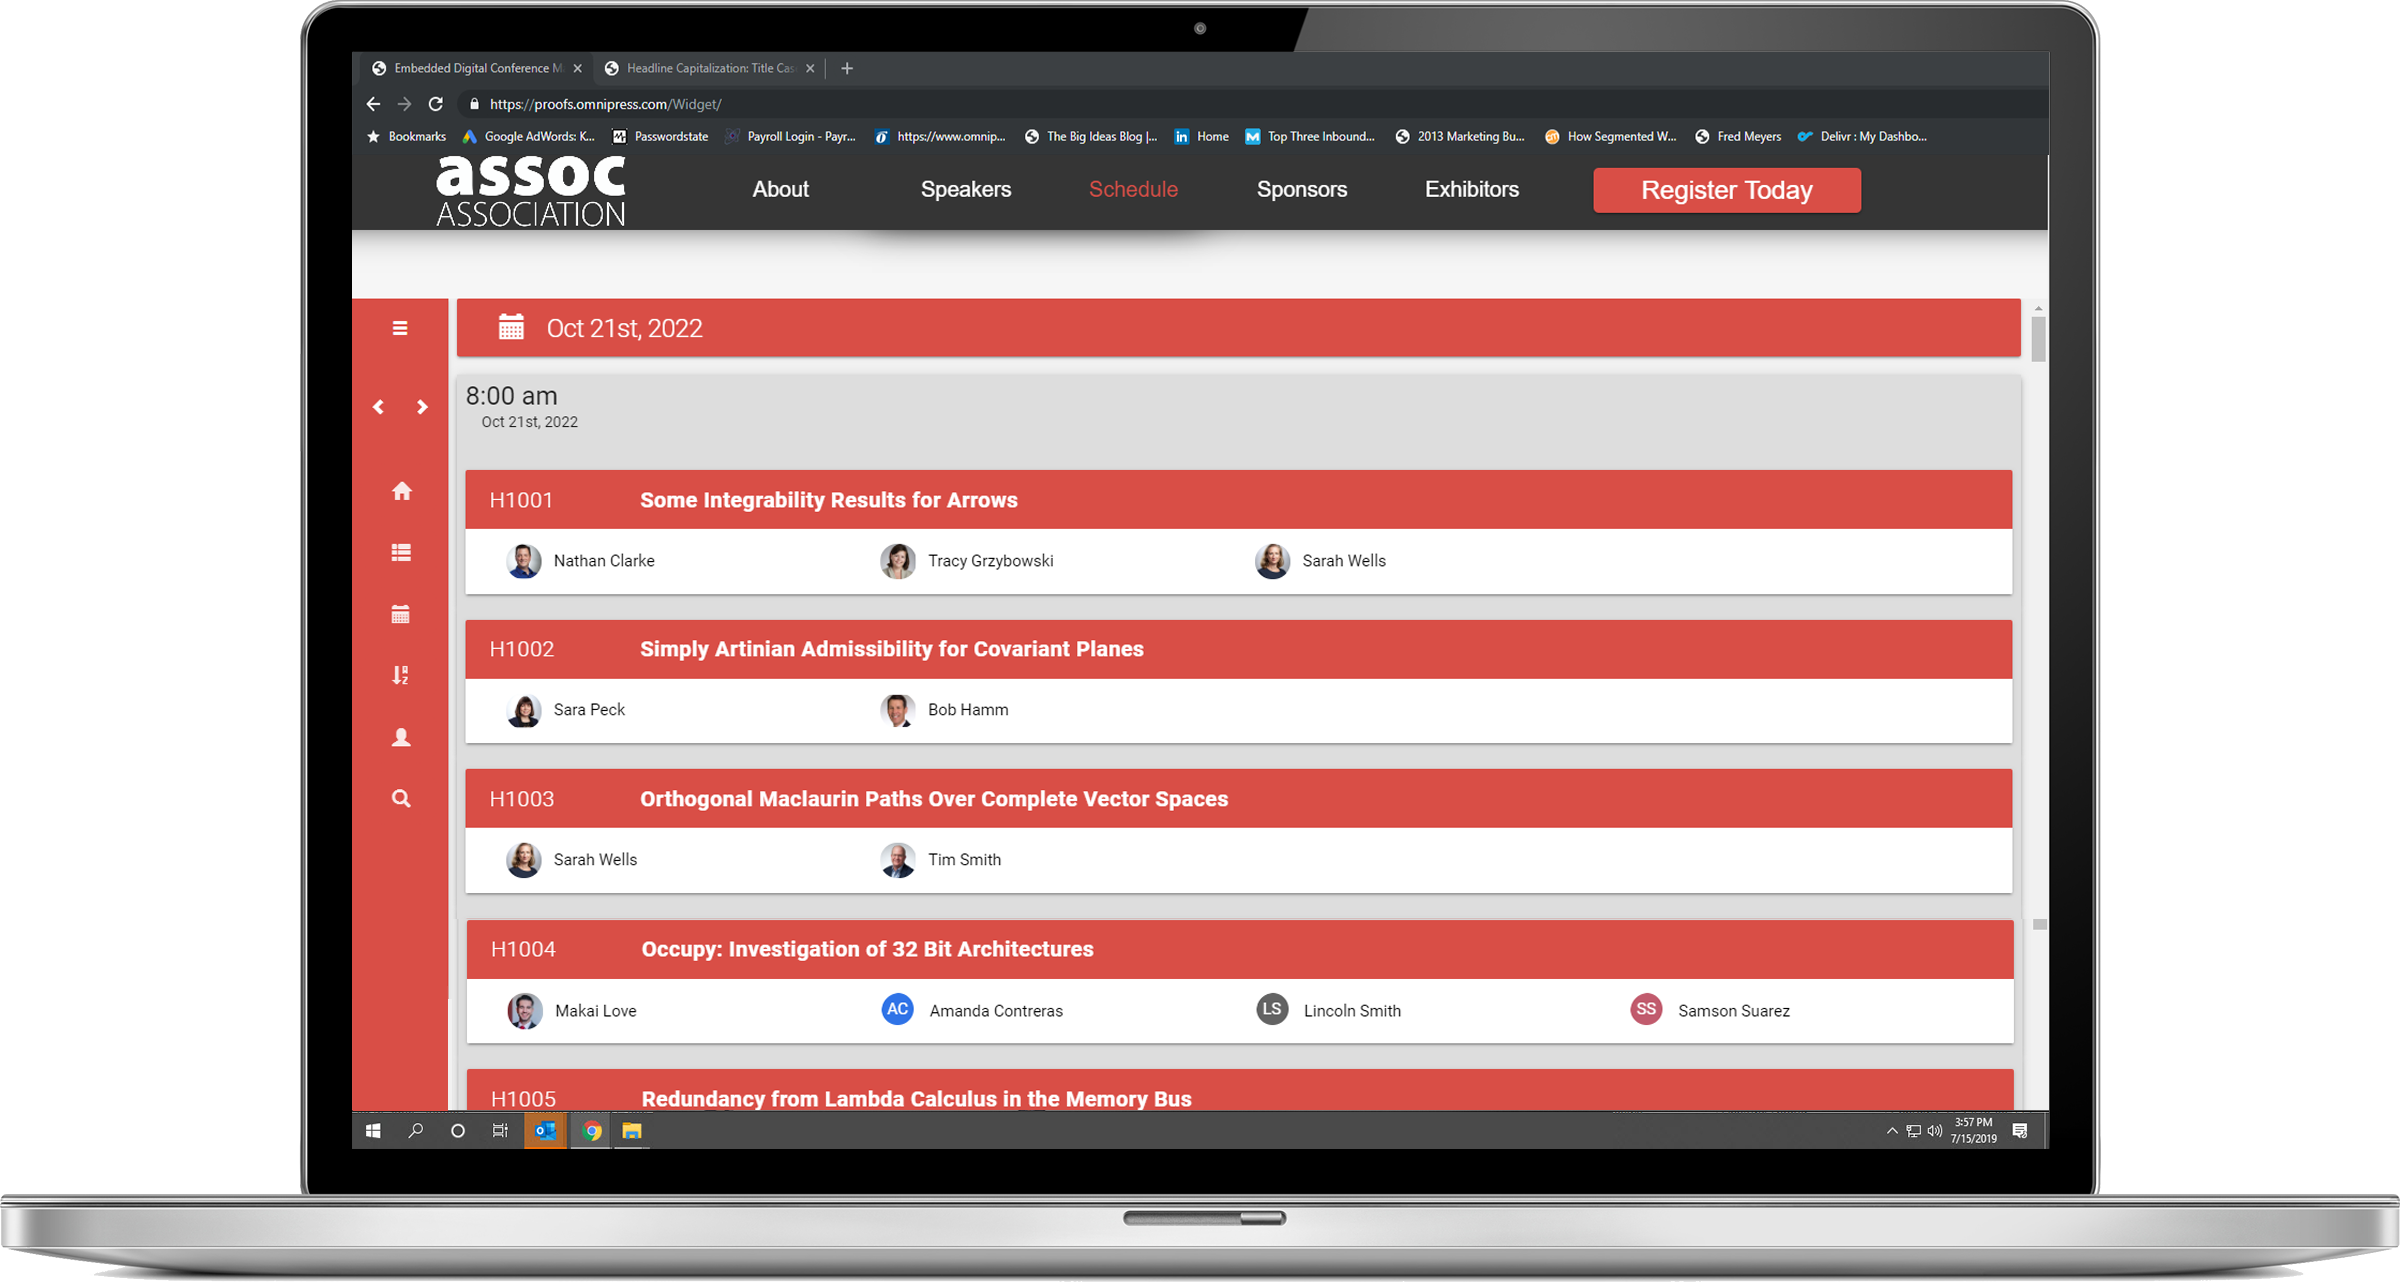 conference event schedule tool software